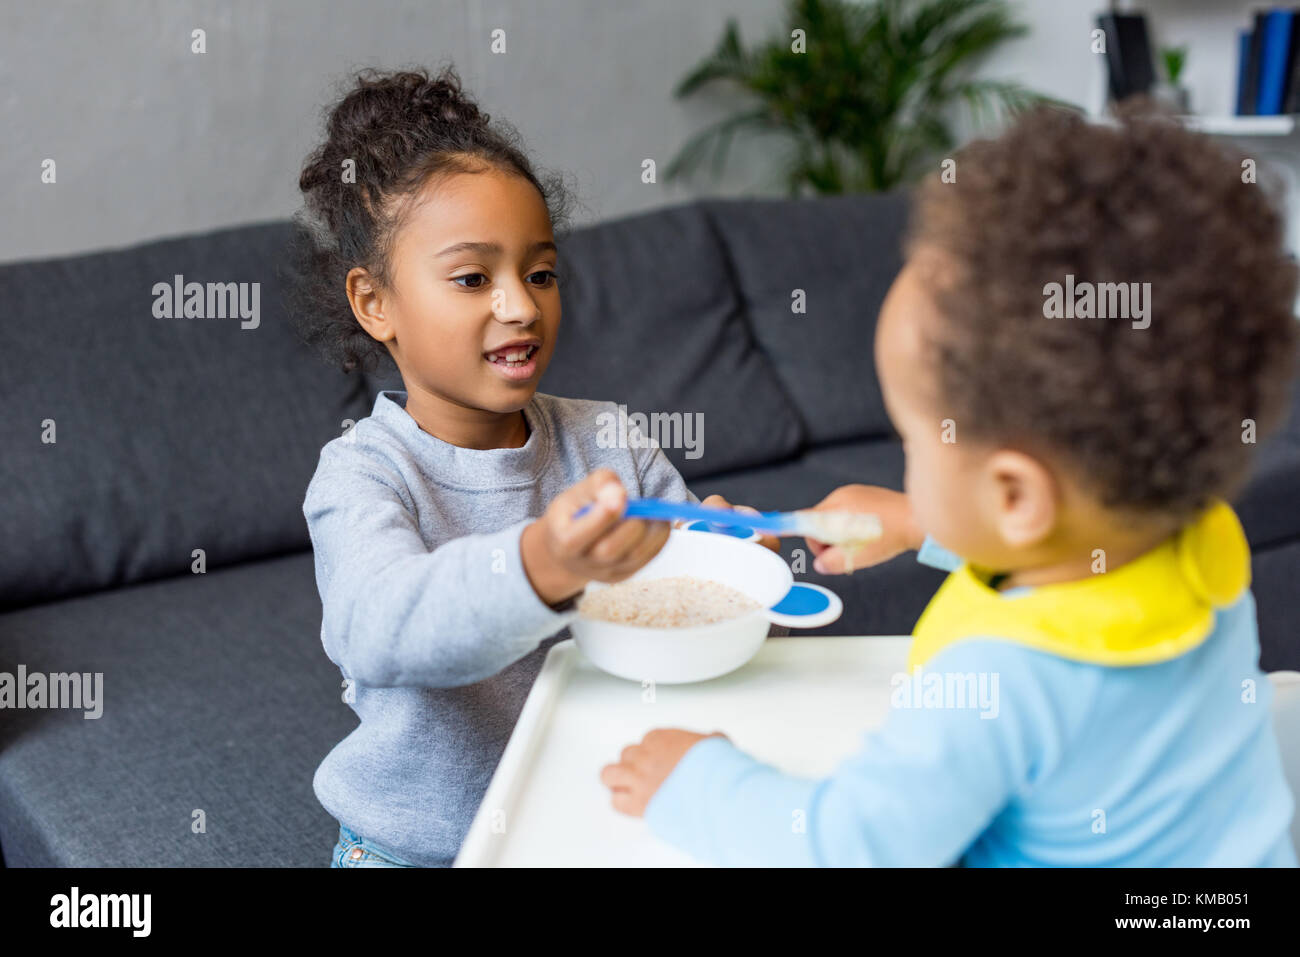 sister feeding little brother - Stock Image